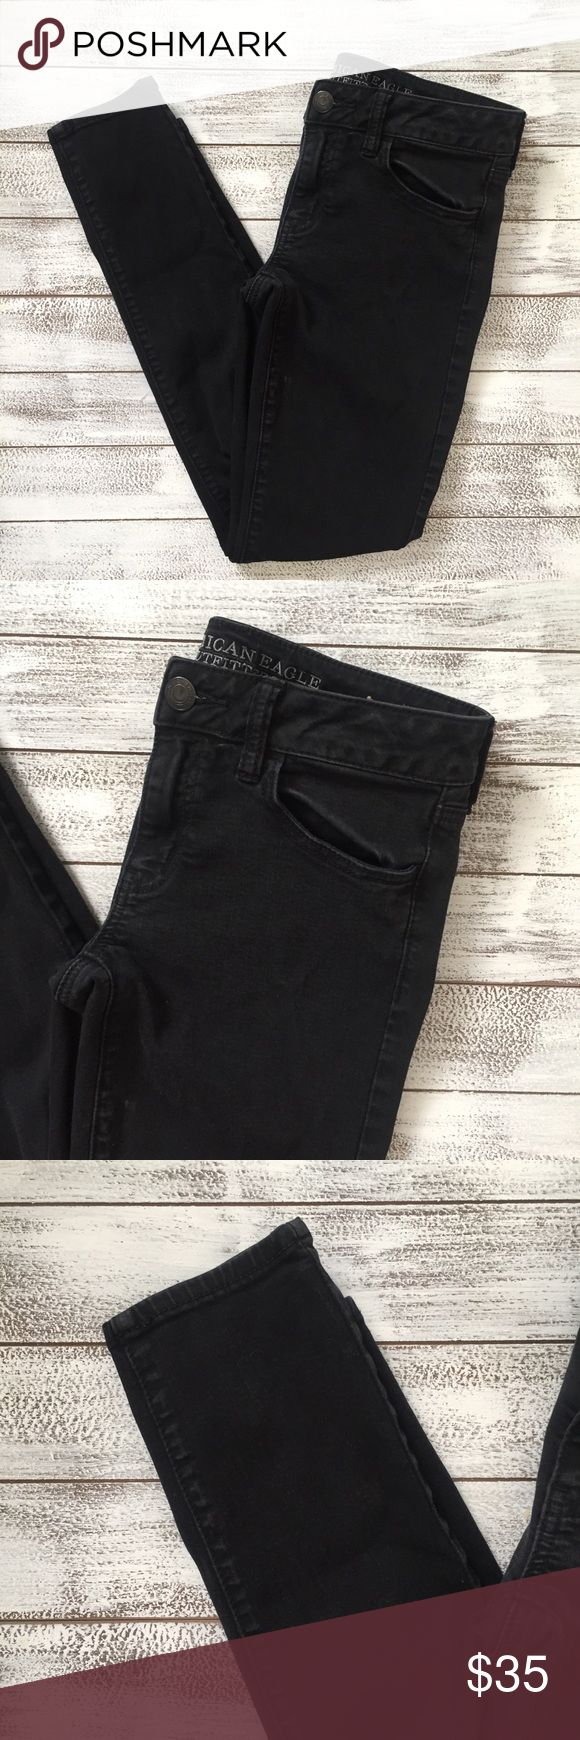 "AMERICAN EAGLE JEAN JEGGING 👖 American Eagle super stretch jean JEGGING. Size 6 Regular. Wonderful condition.  Waist 14.5"" Inseam 28"" Length 36"" American Eagle Outfitters Jeans Skinny"